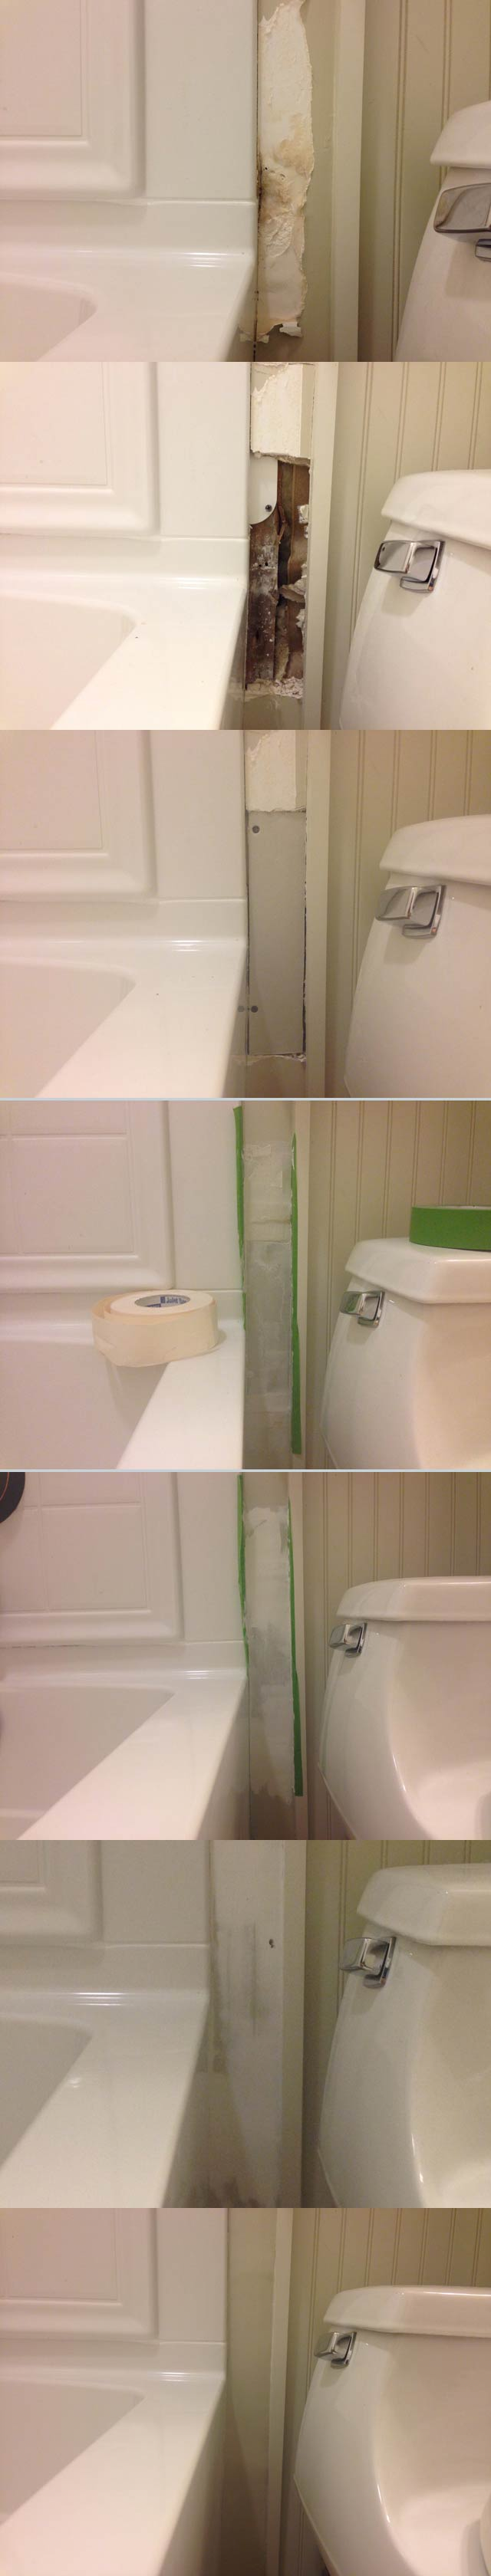 Repair Caulk Grout And Drywall In A Weekend Checking In With Chelsea - Repair bathroom wall water damage